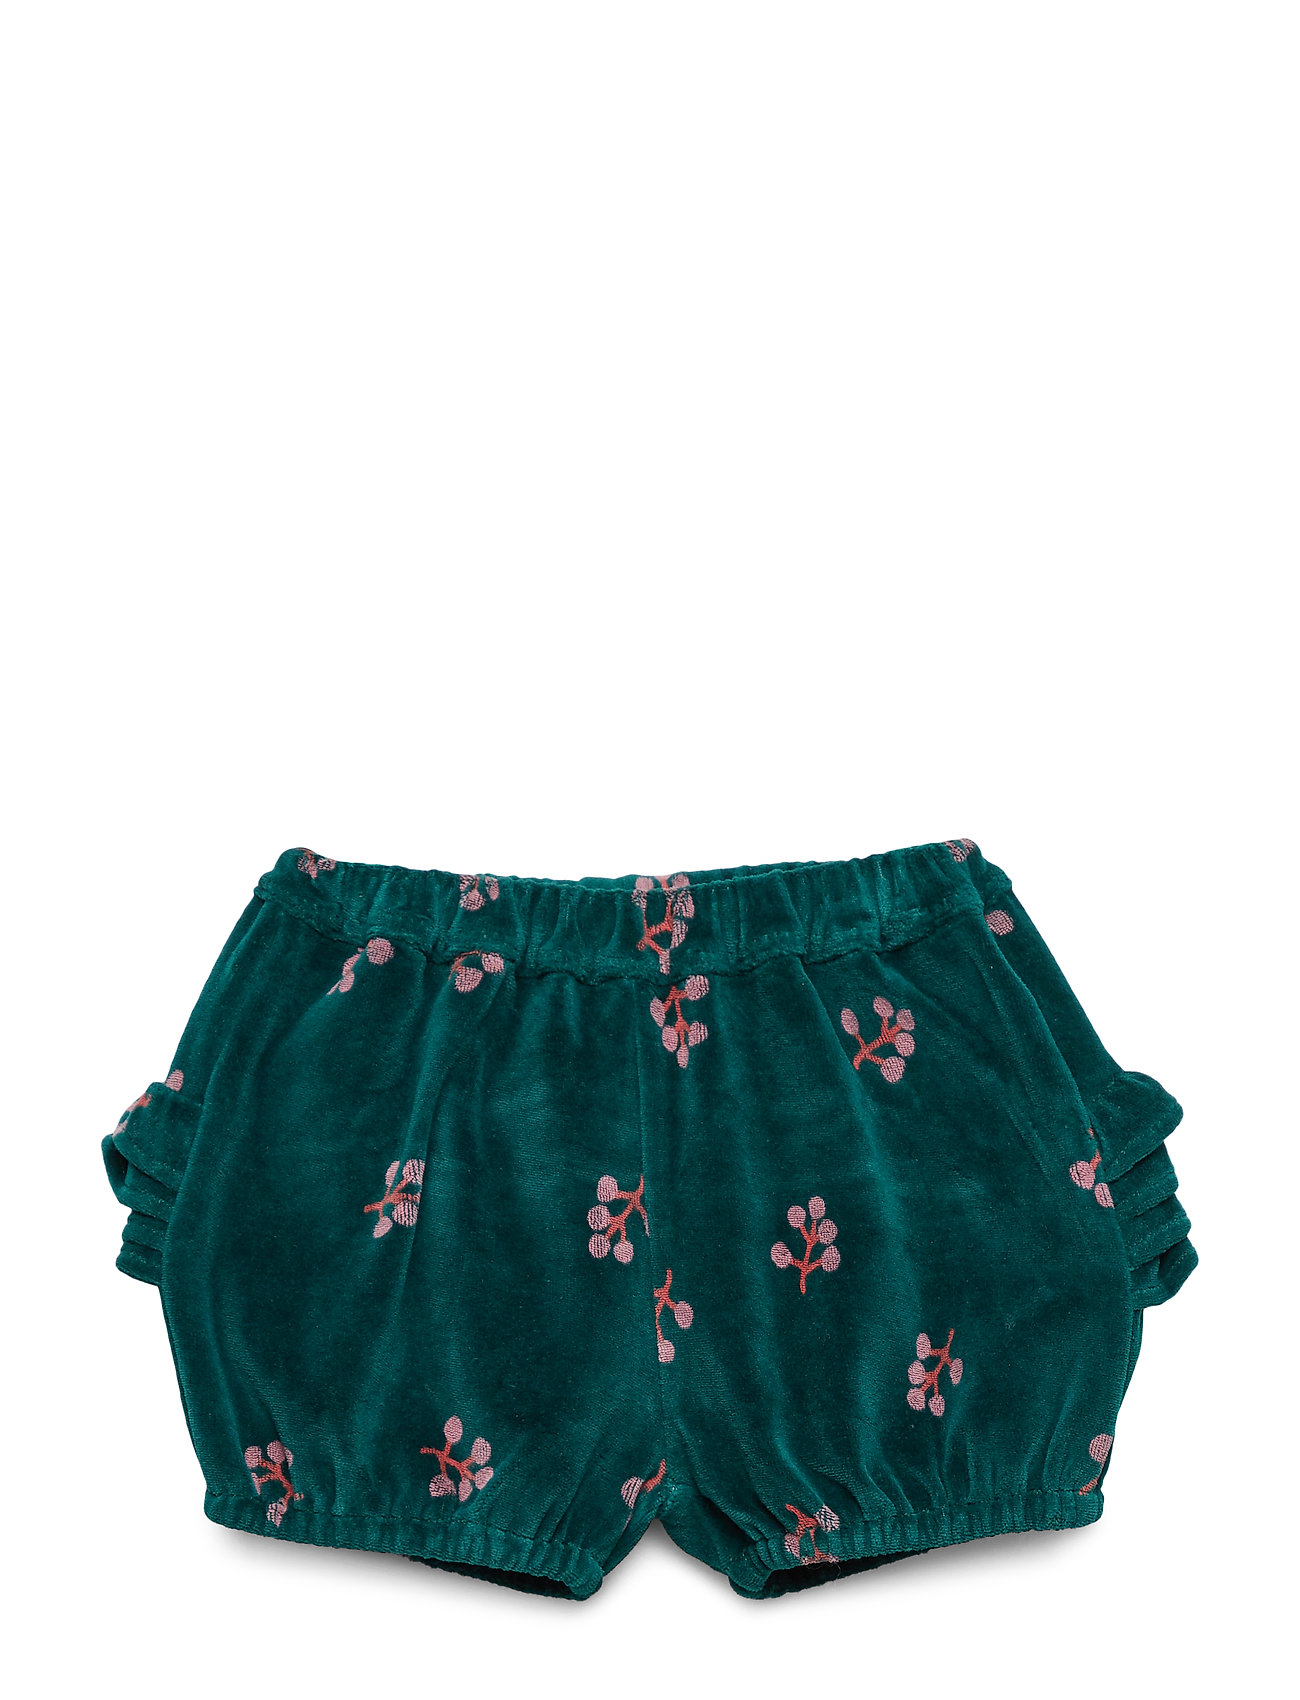 Soft Gallery Pip Bloomers - DEEP TEAL, AOP WINTERBERRY